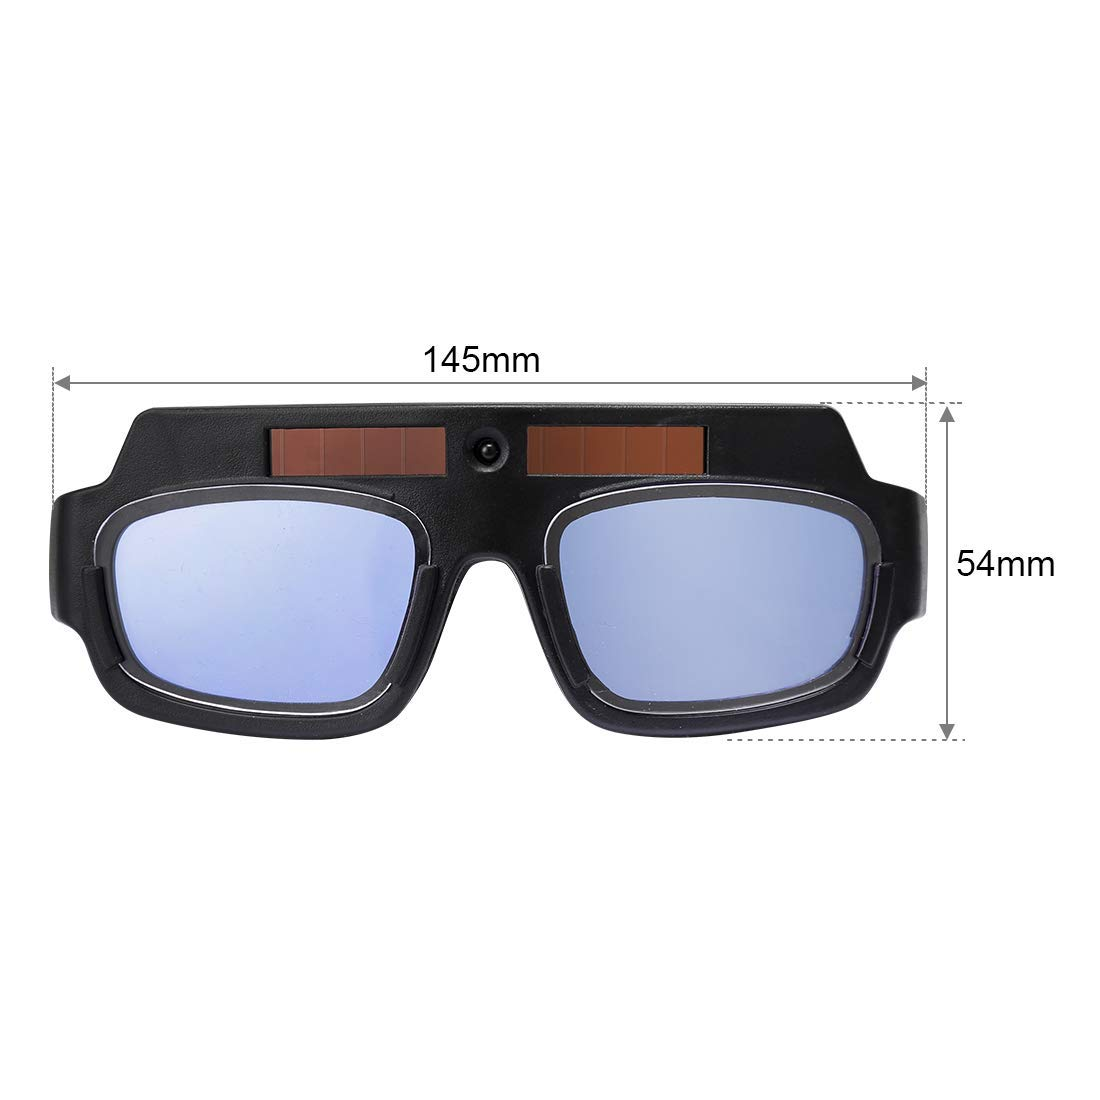 LETBUY Welding Glasses Mask Helmet Eyes Goggles, Solar Auto Darkening Welding Goggle Safety Protective Eyes Goggle, Professional PC Lens Welder Soldering Mask Anti-Flog Anti-Glare Goggles by LETBUY-Tech (Image #2)